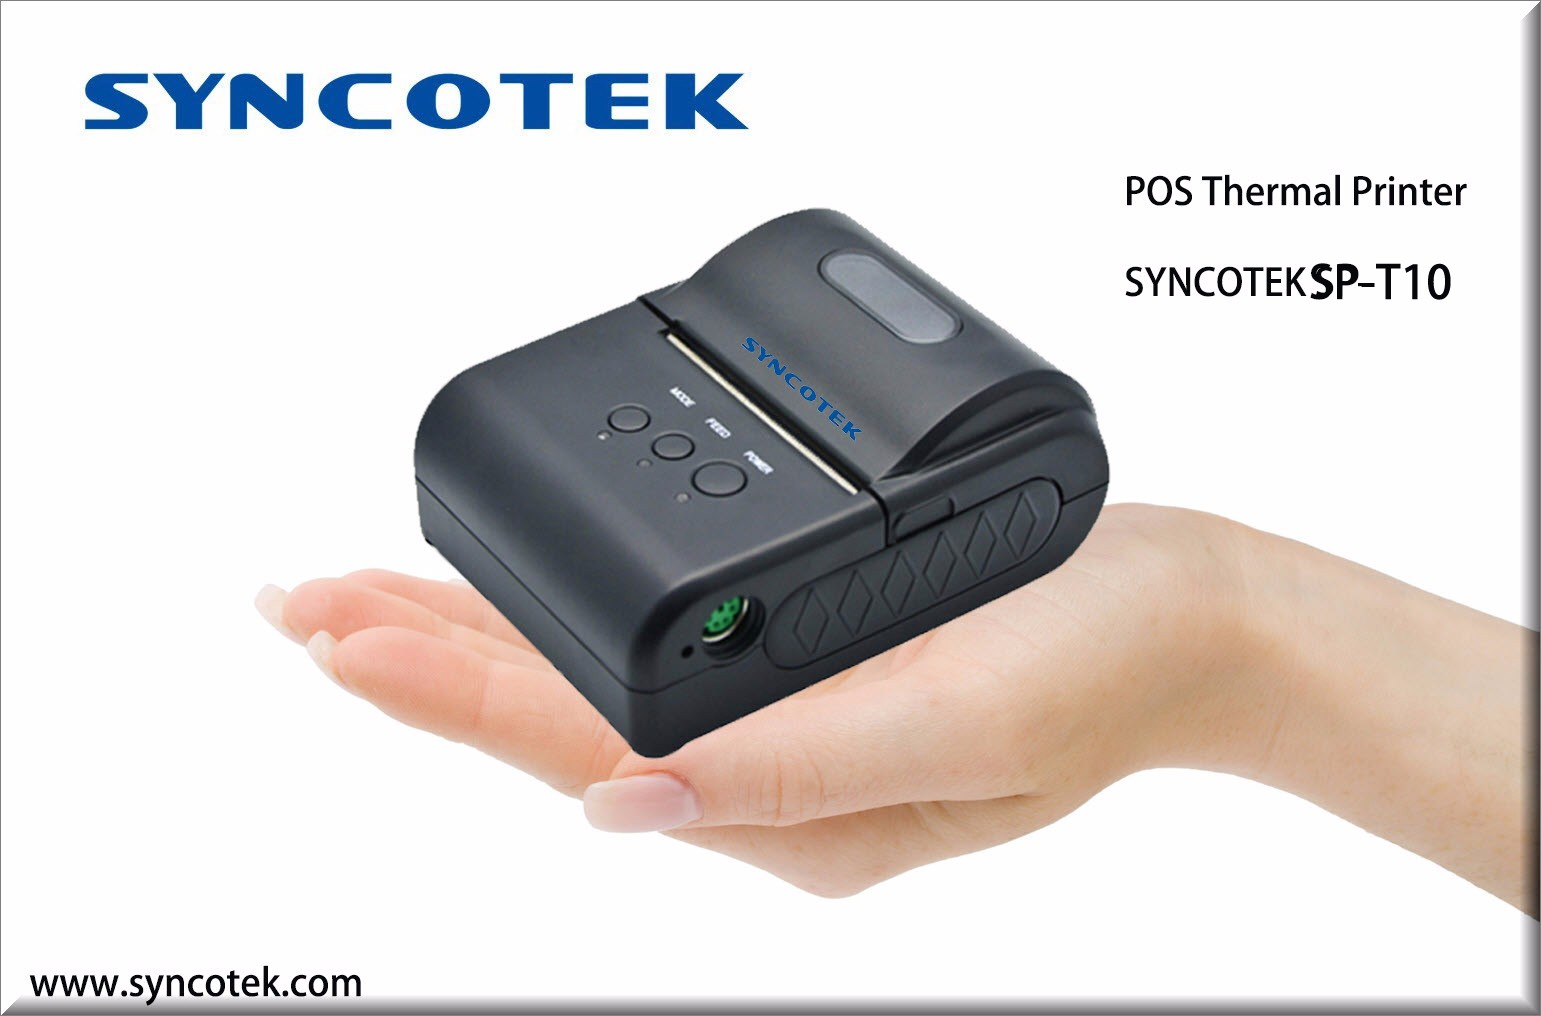 POS-Thermal-Printer-SYNCOTEK SP-T10.jpg